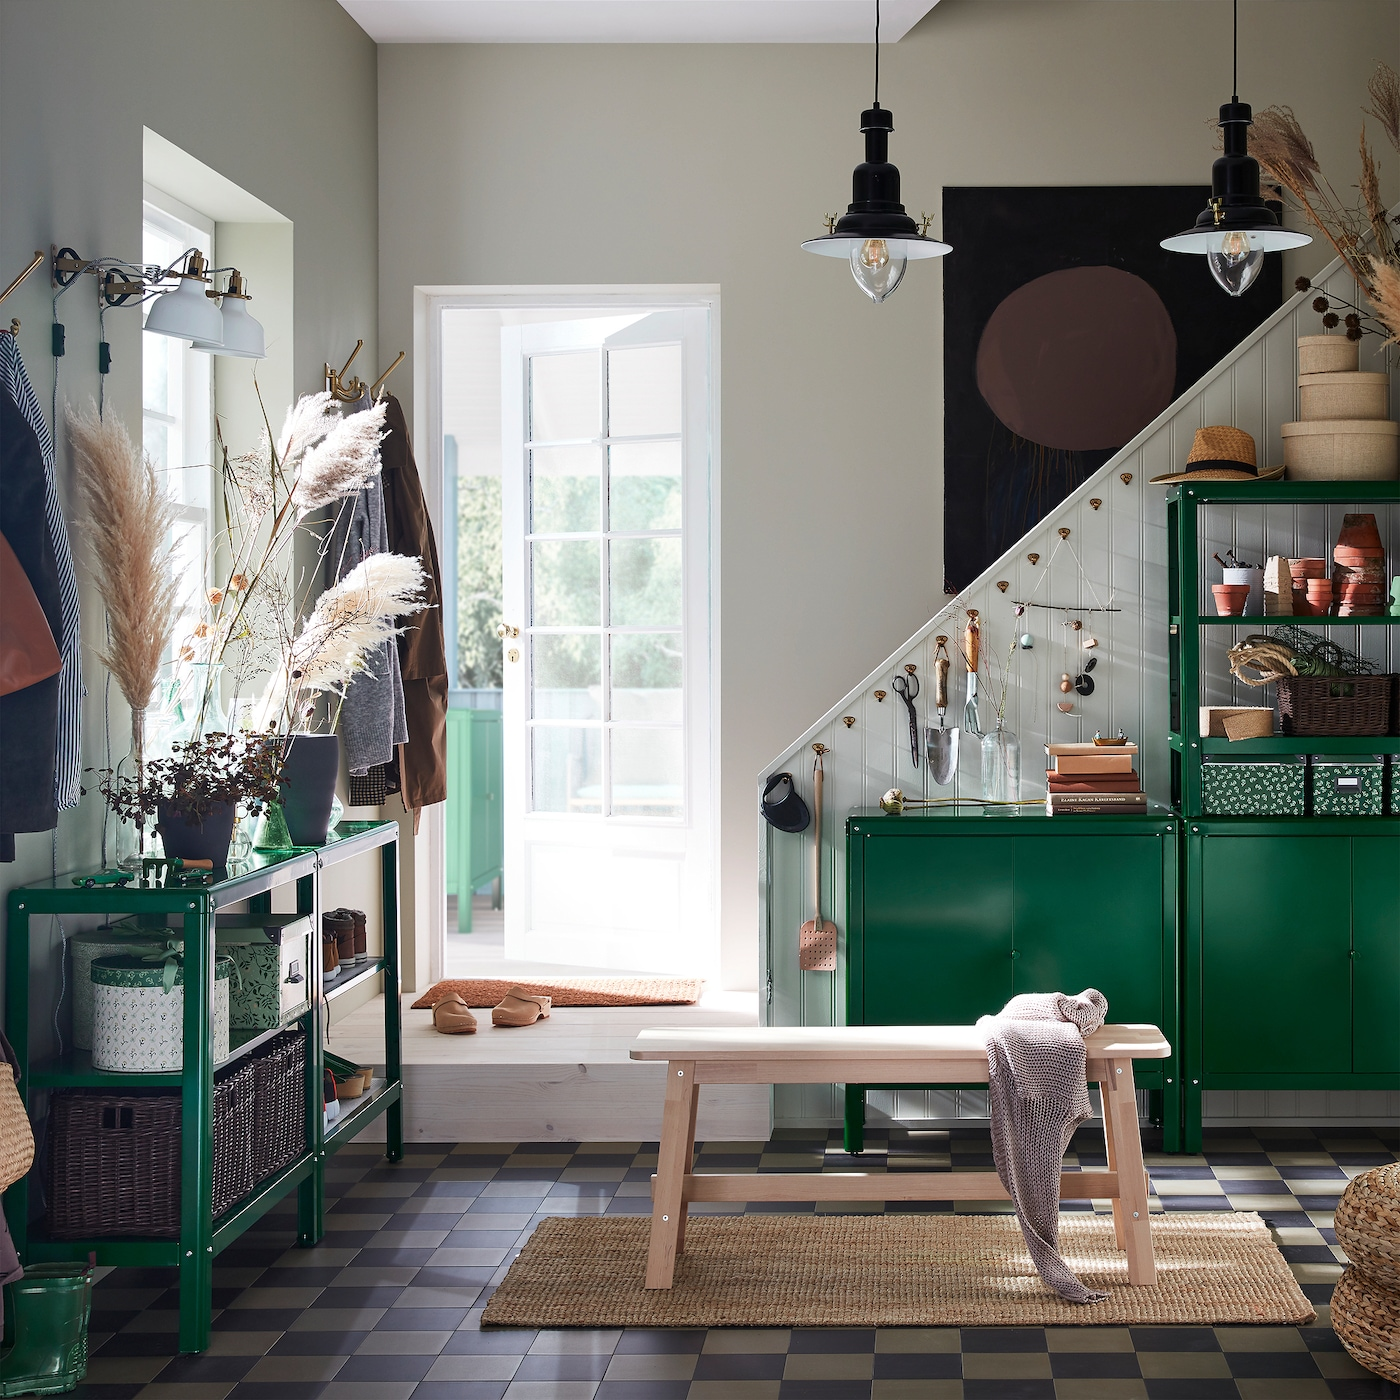 A hallway with KOLBJÖRN shelving units and cabinets in green, a bench in birch, a jute rug and two black pendant lamps.